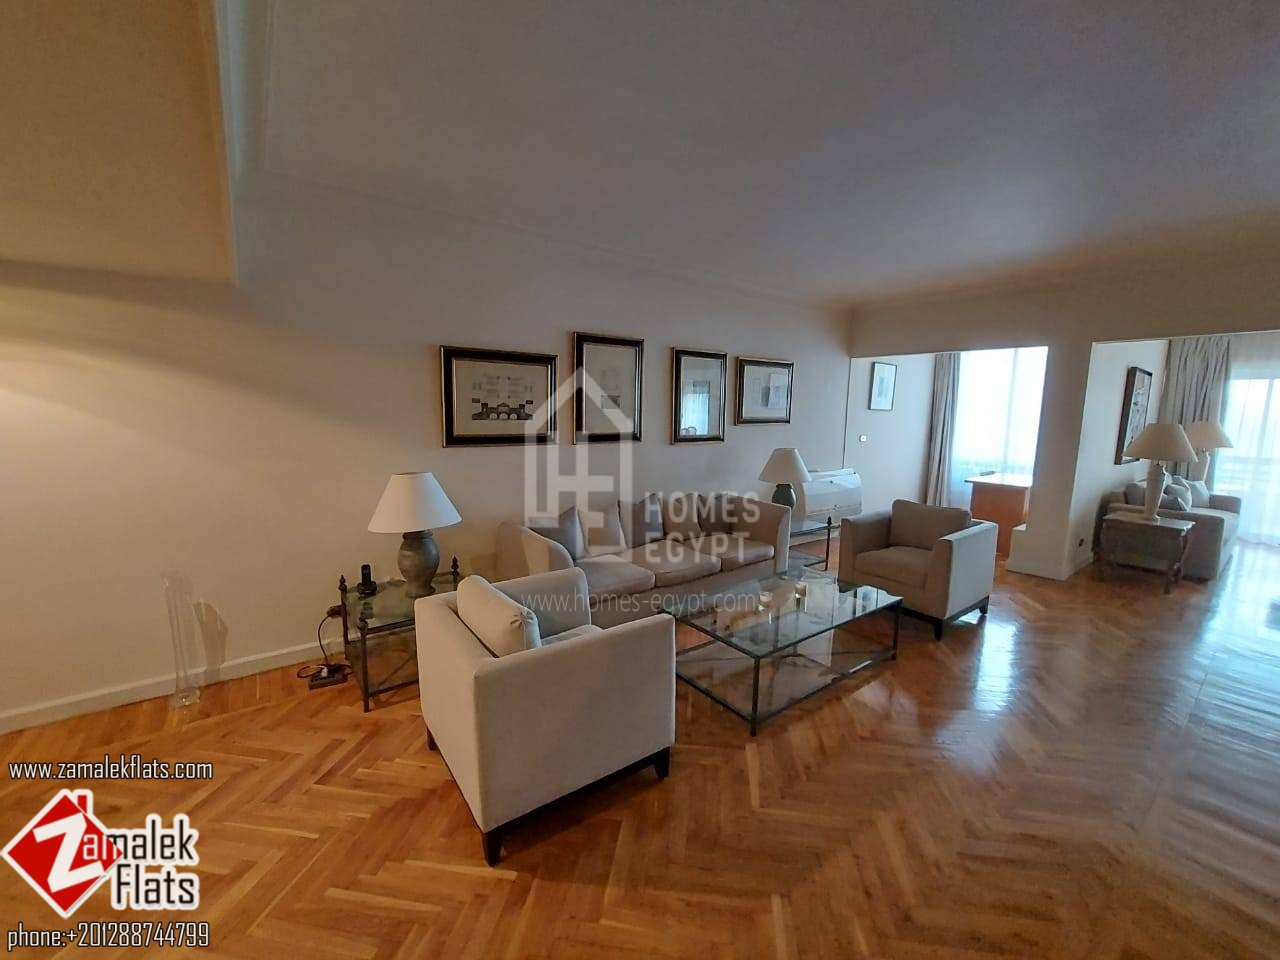 New Furnished Apartment With Nile And Aquriam Garden View In South Zamalek